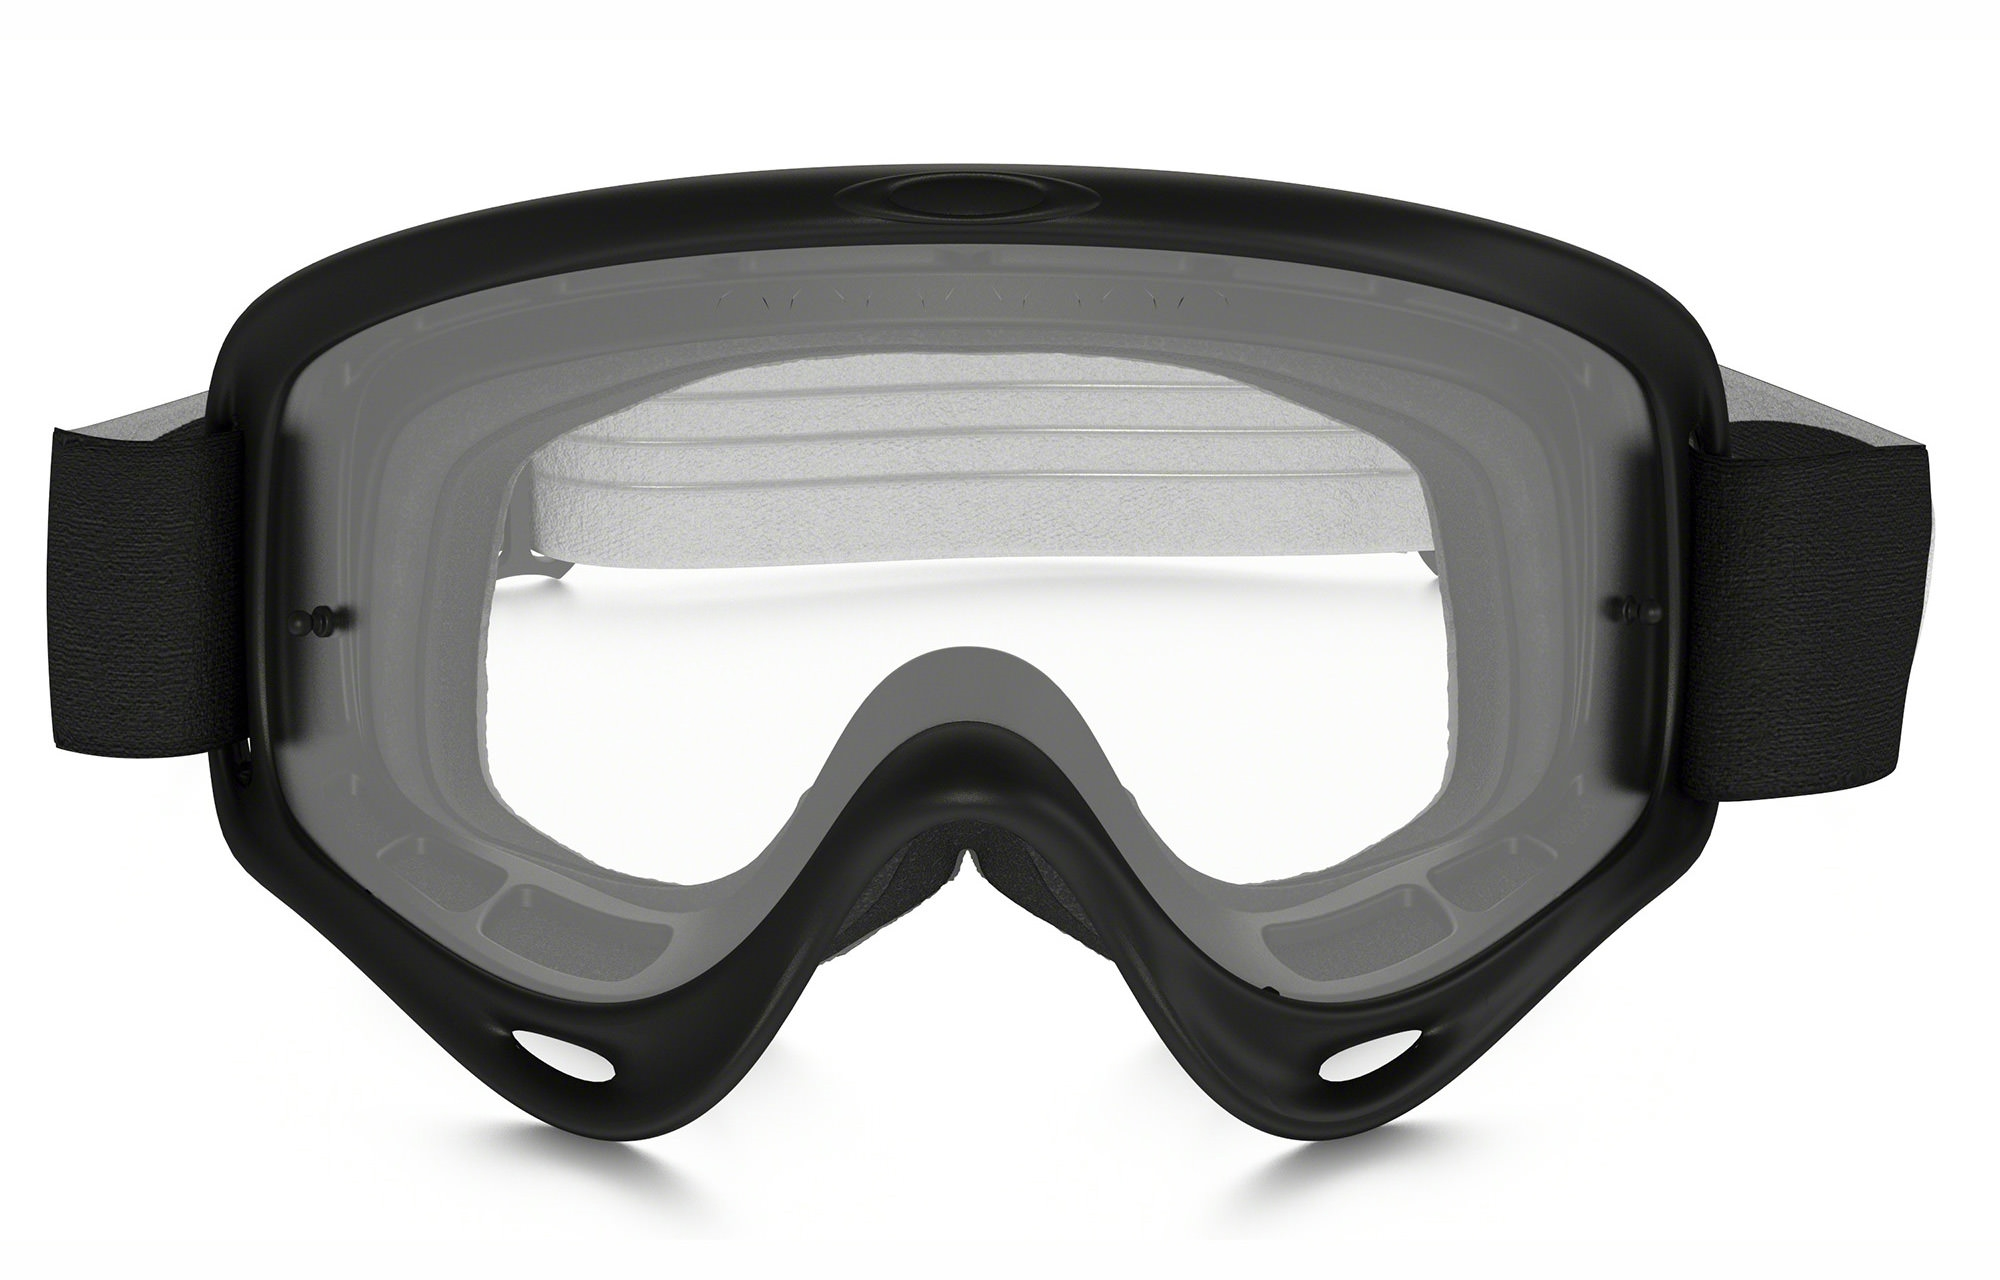 b2c2b4f9261 Oakley O Frame Mx Goggles With Clear Lens « Heritage Malta